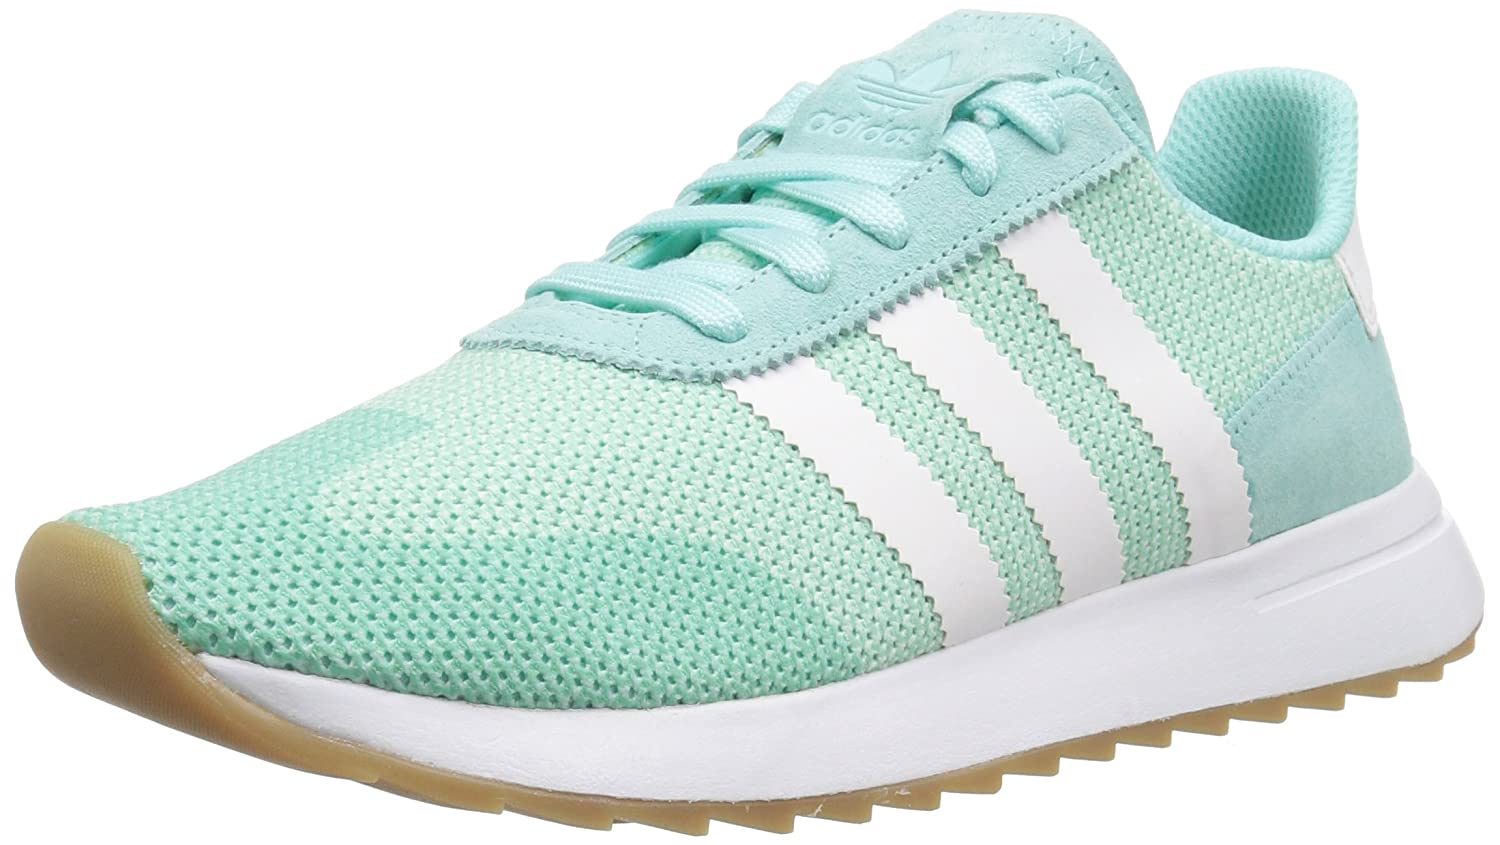 adidas Originals Women's FLB_Runner W Running Shoe B075R8JQ2N 7 B(M) US|Energy Aqua Fabric, Ftwr White, Gum